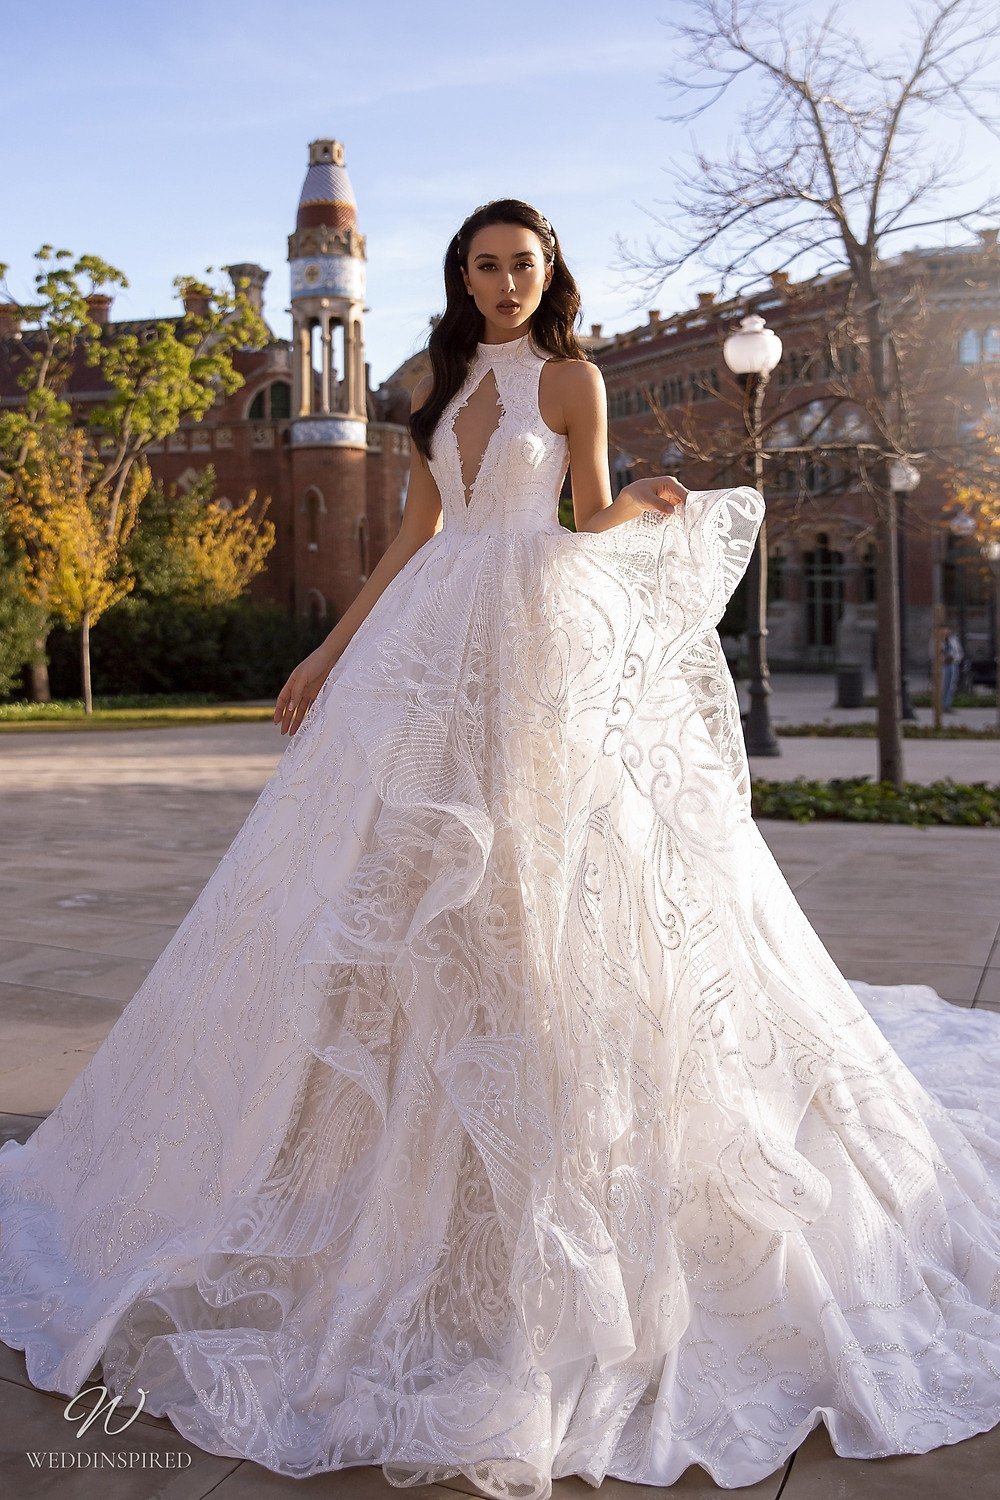 A Maks Mariano sparkle princess ball gown wedding dress